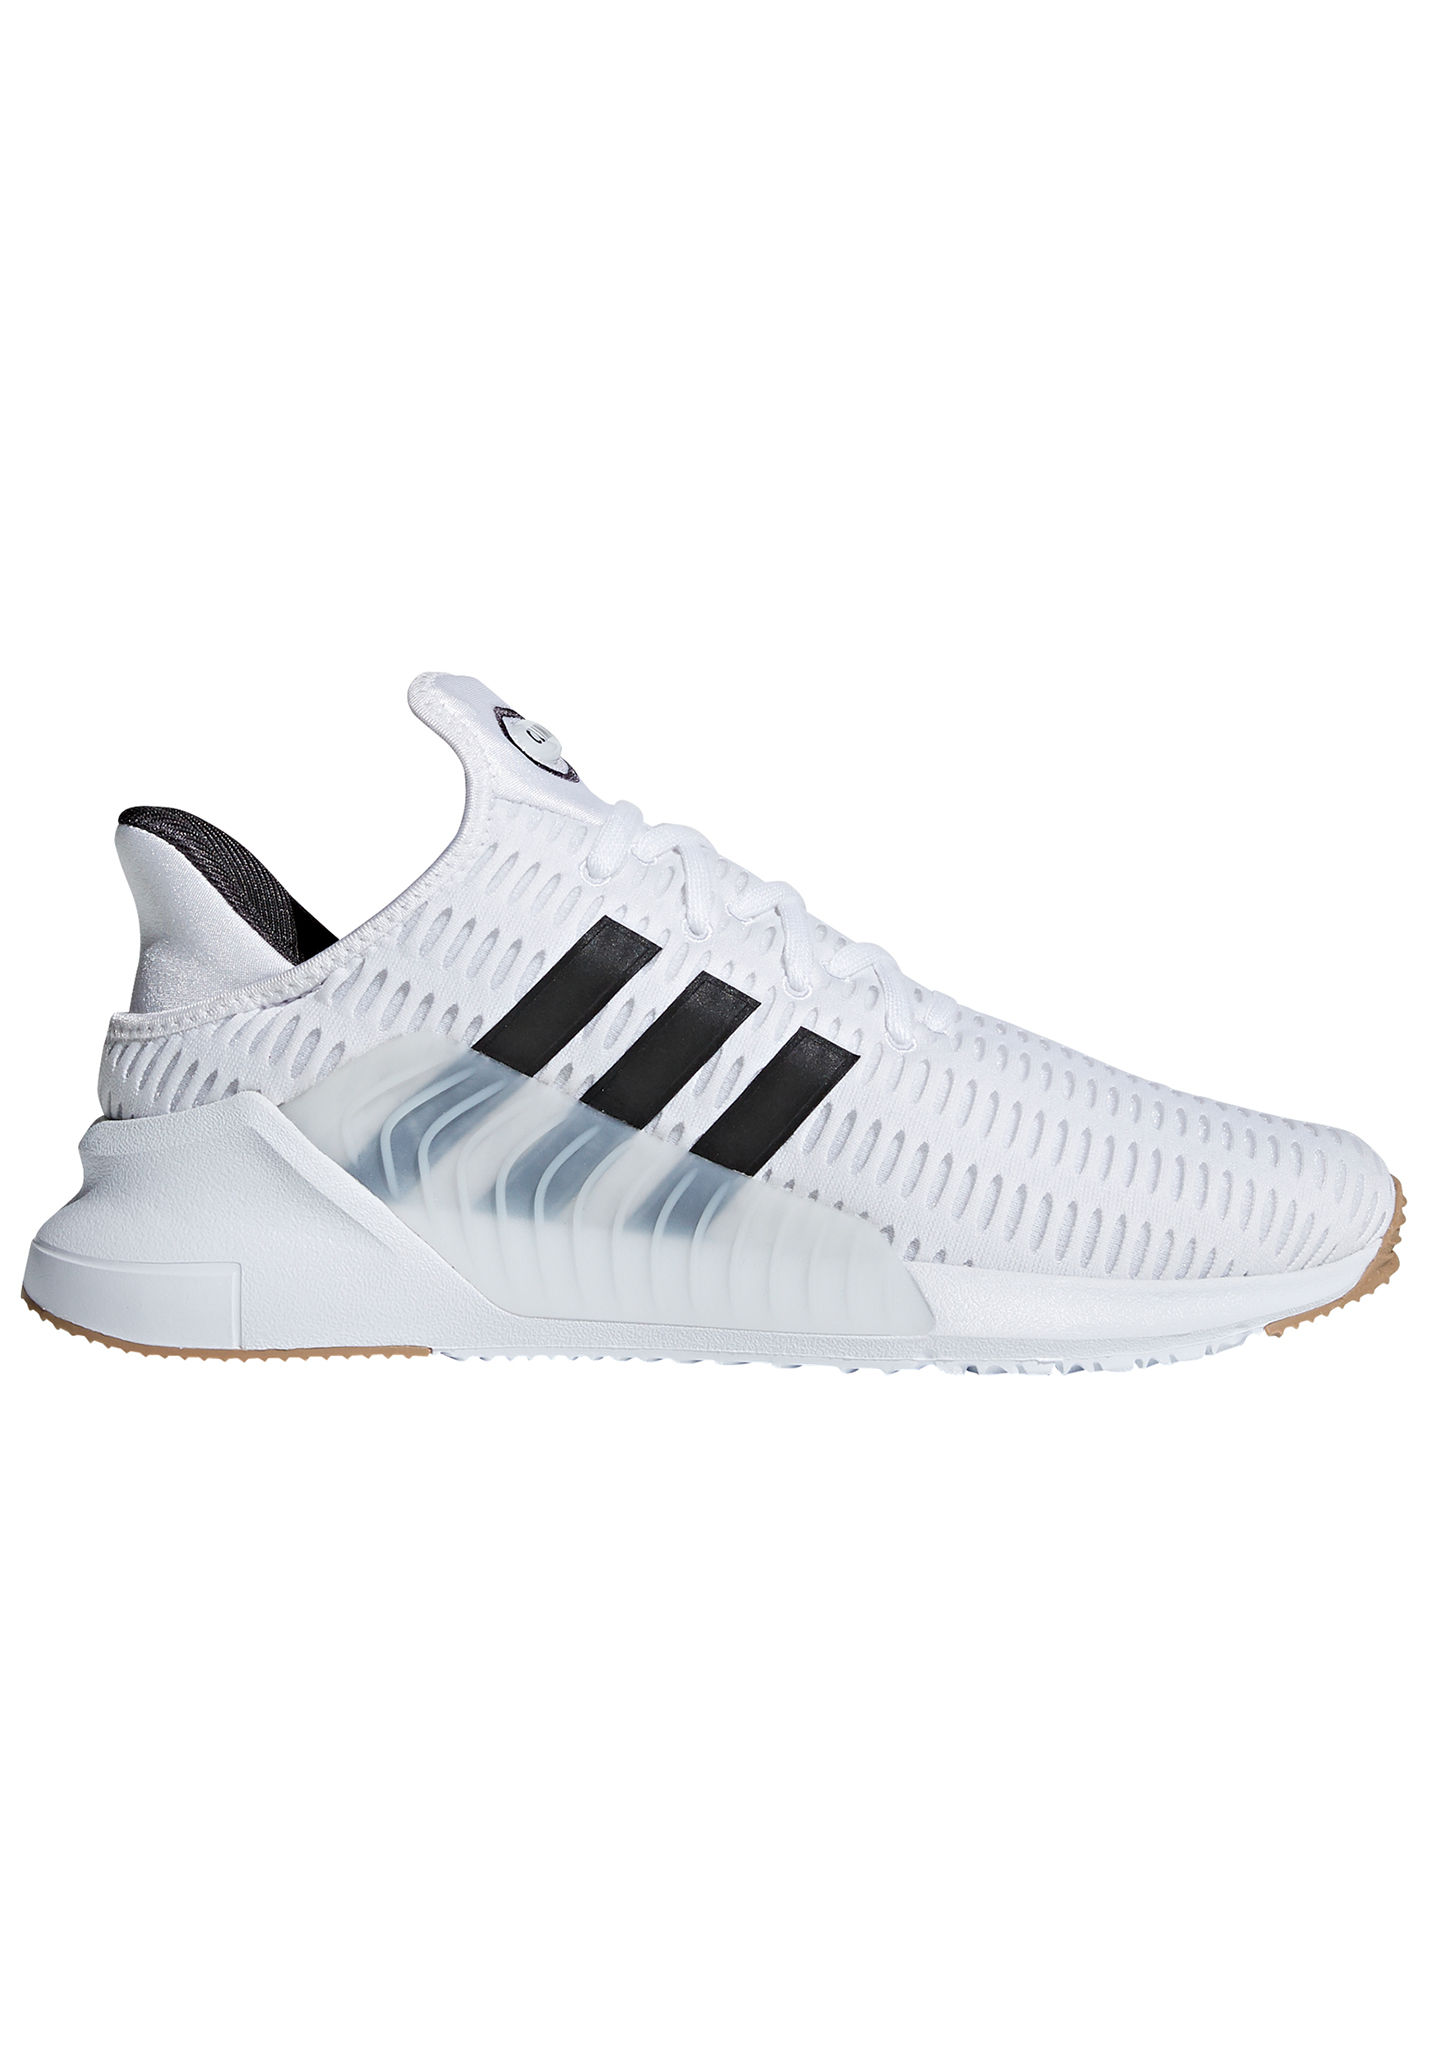 quality design a42f2 0bef9 ADIDAS ORIGINALS Climacool 02 17 - Sneaker per Uomo - Bianco - Planet Sports